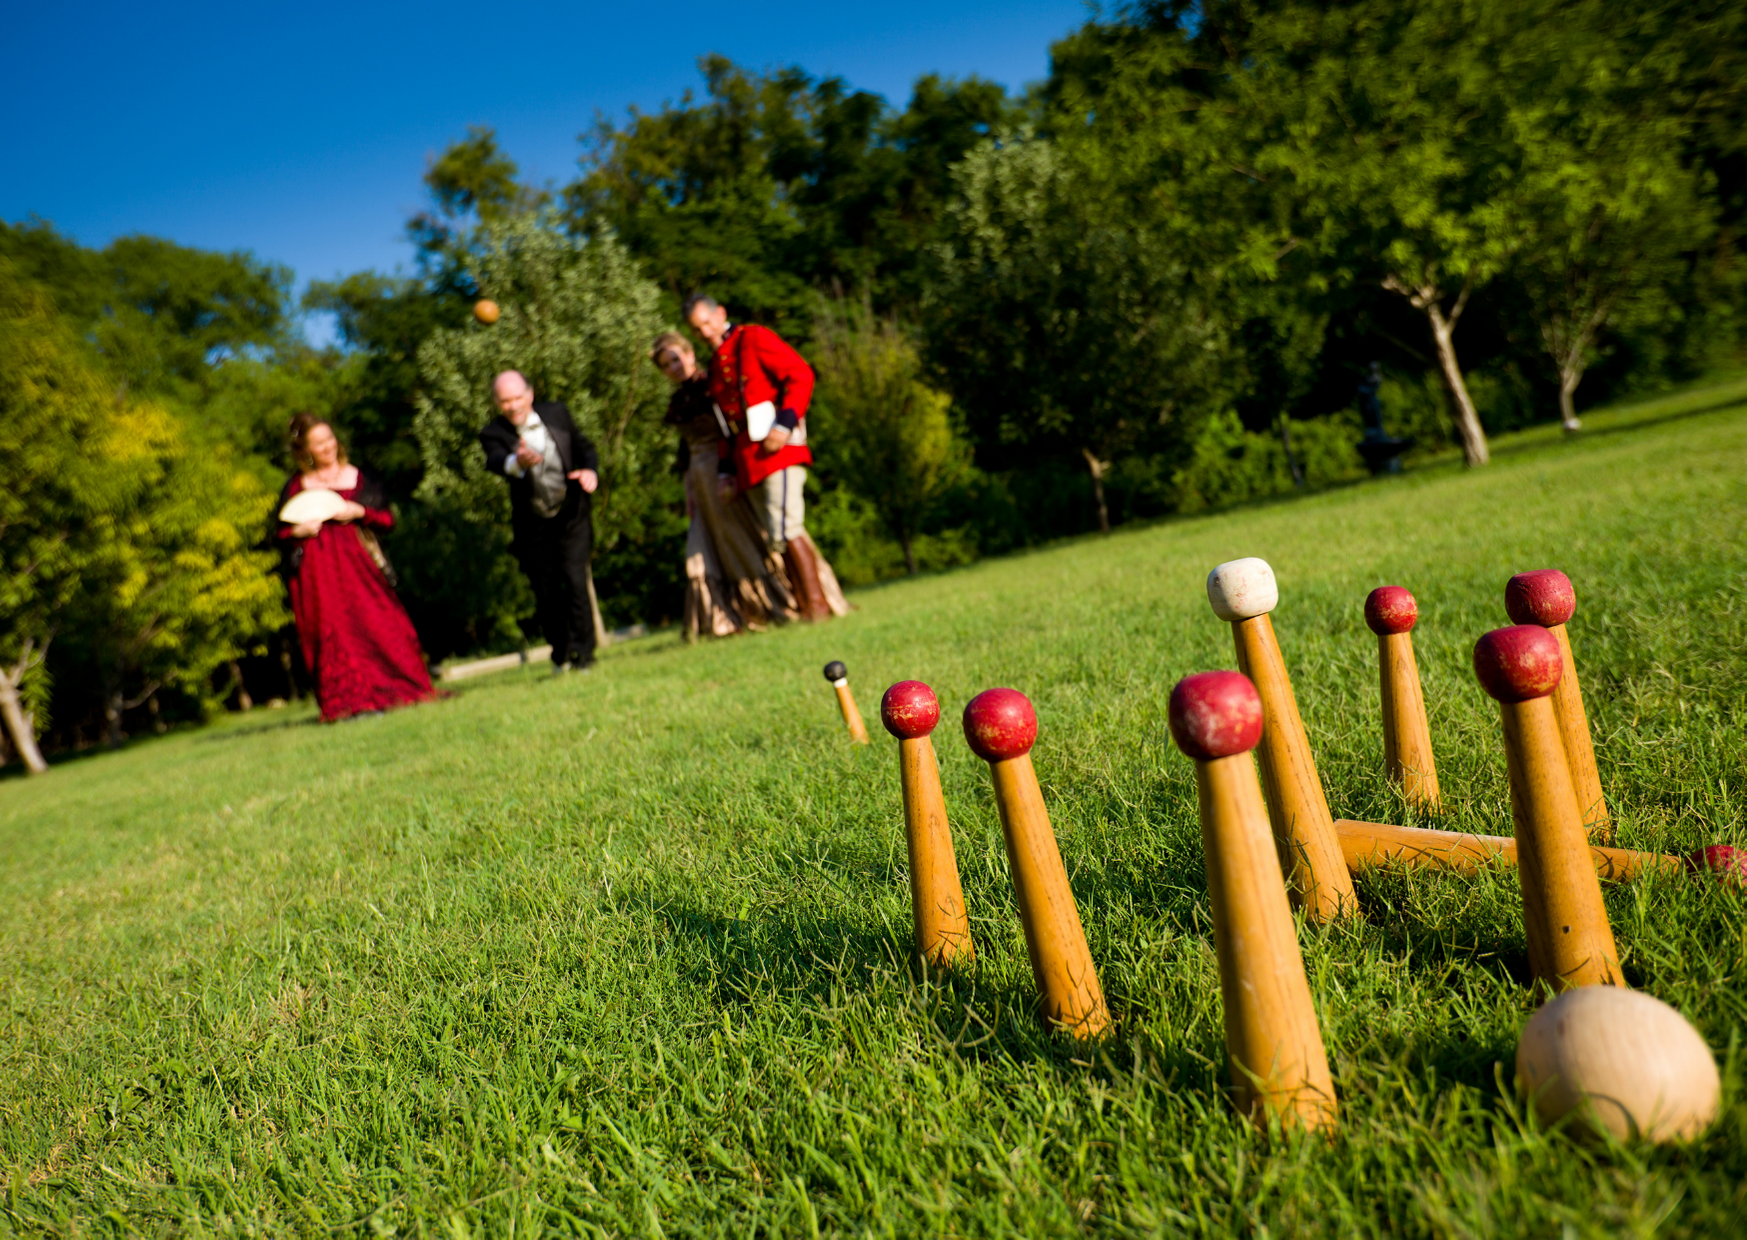 a group of people traditional lawn bowl in Types of Lawn Bowls Games